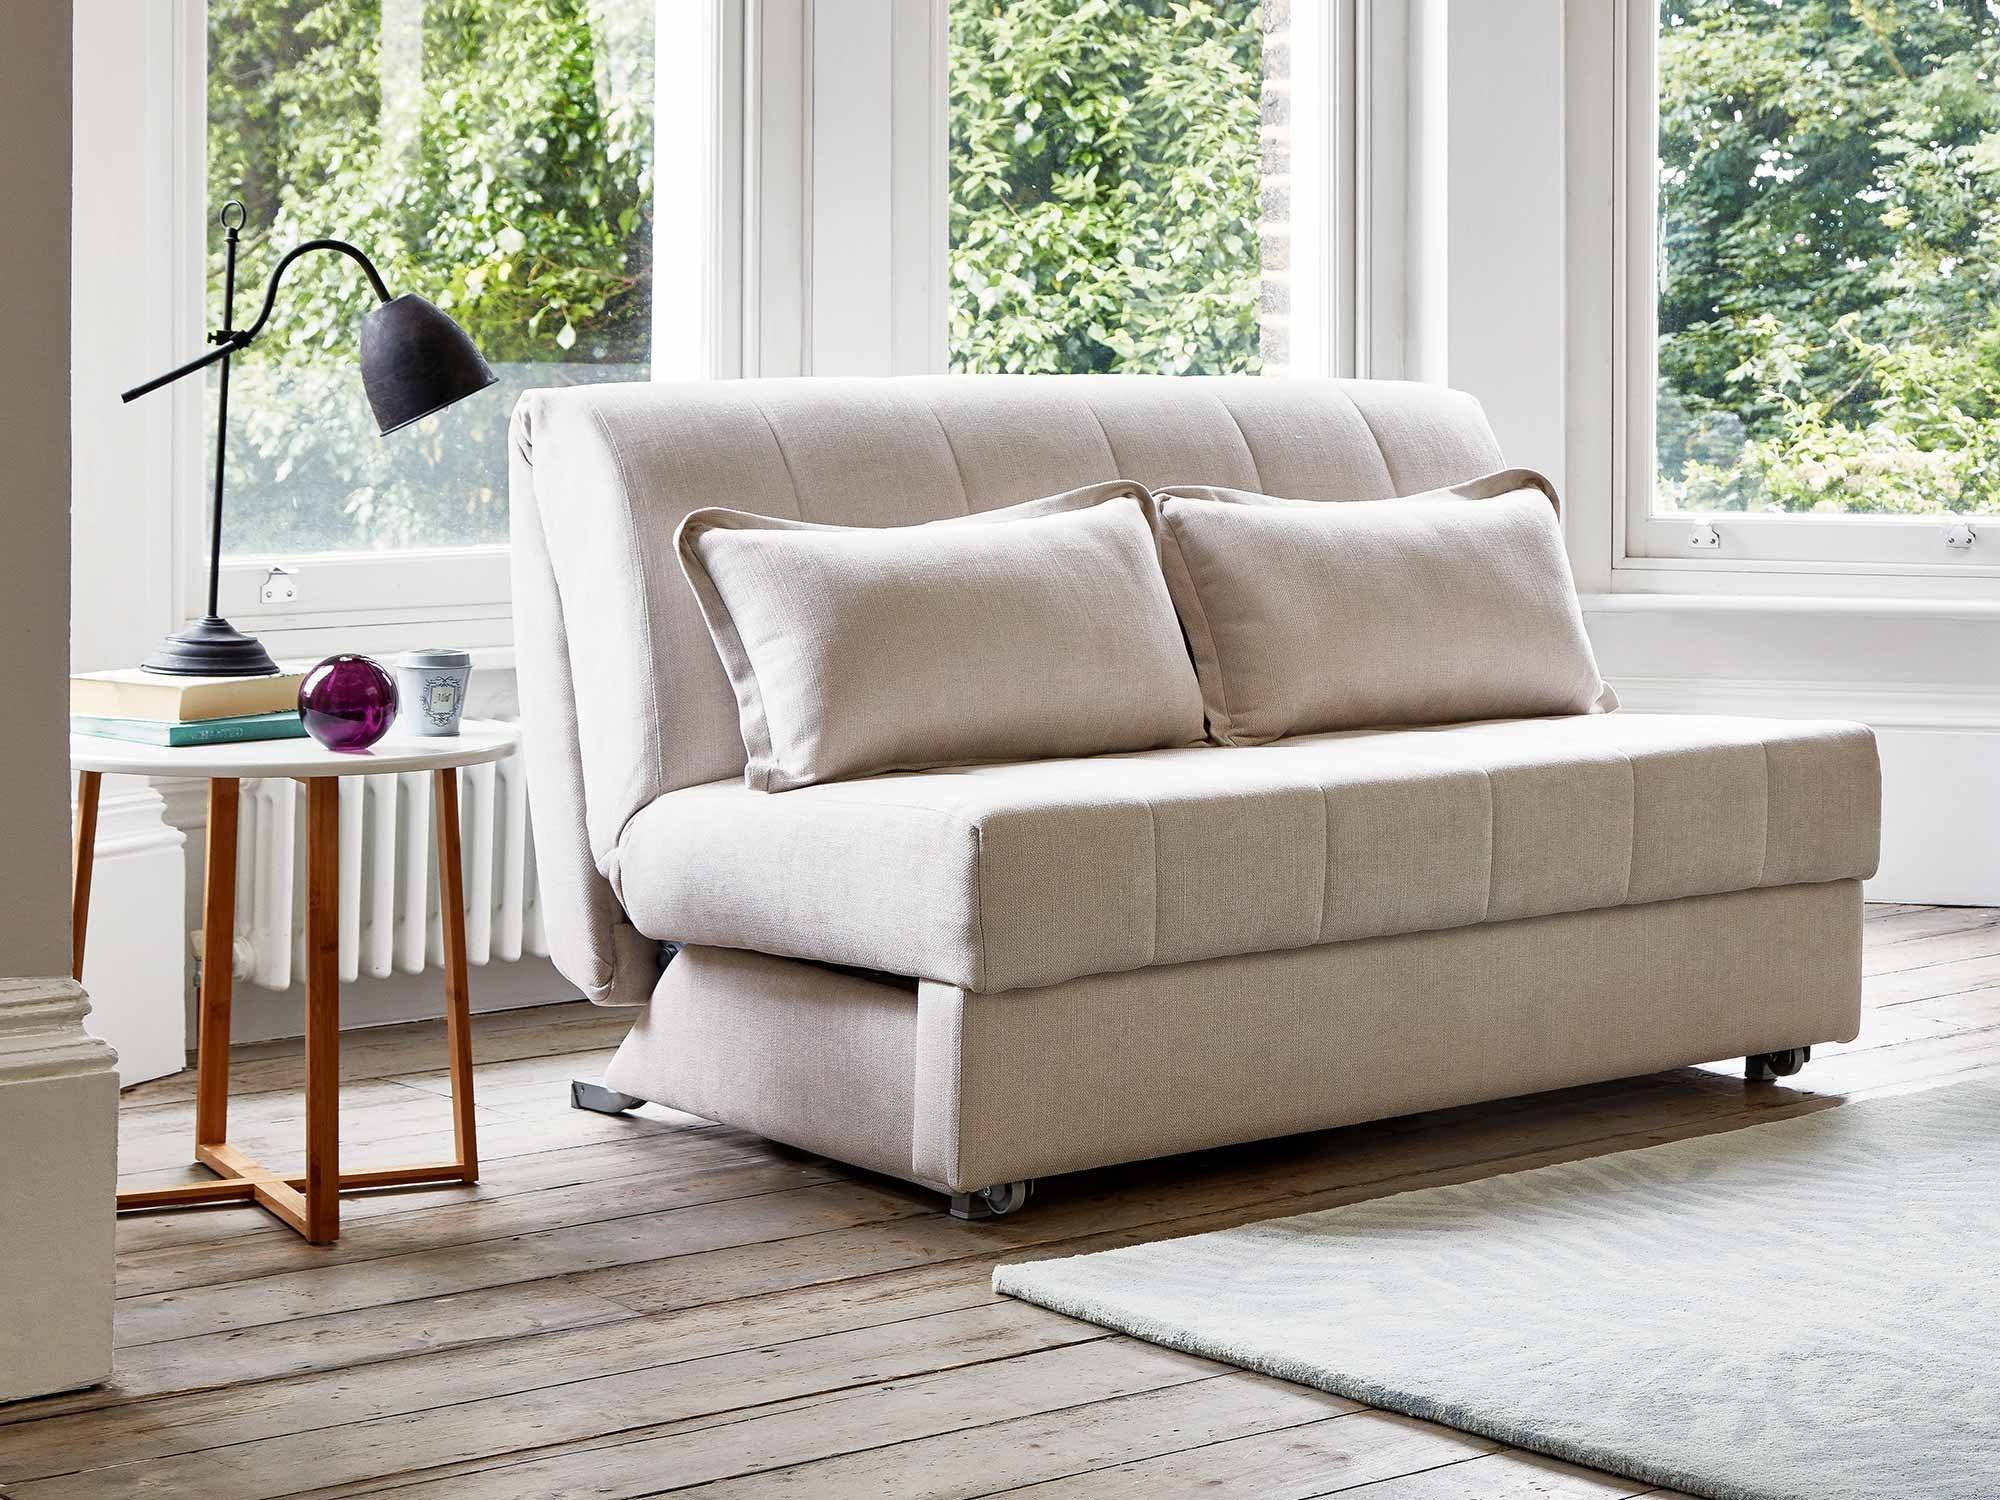 Where To Buy Sleeper Sofas?